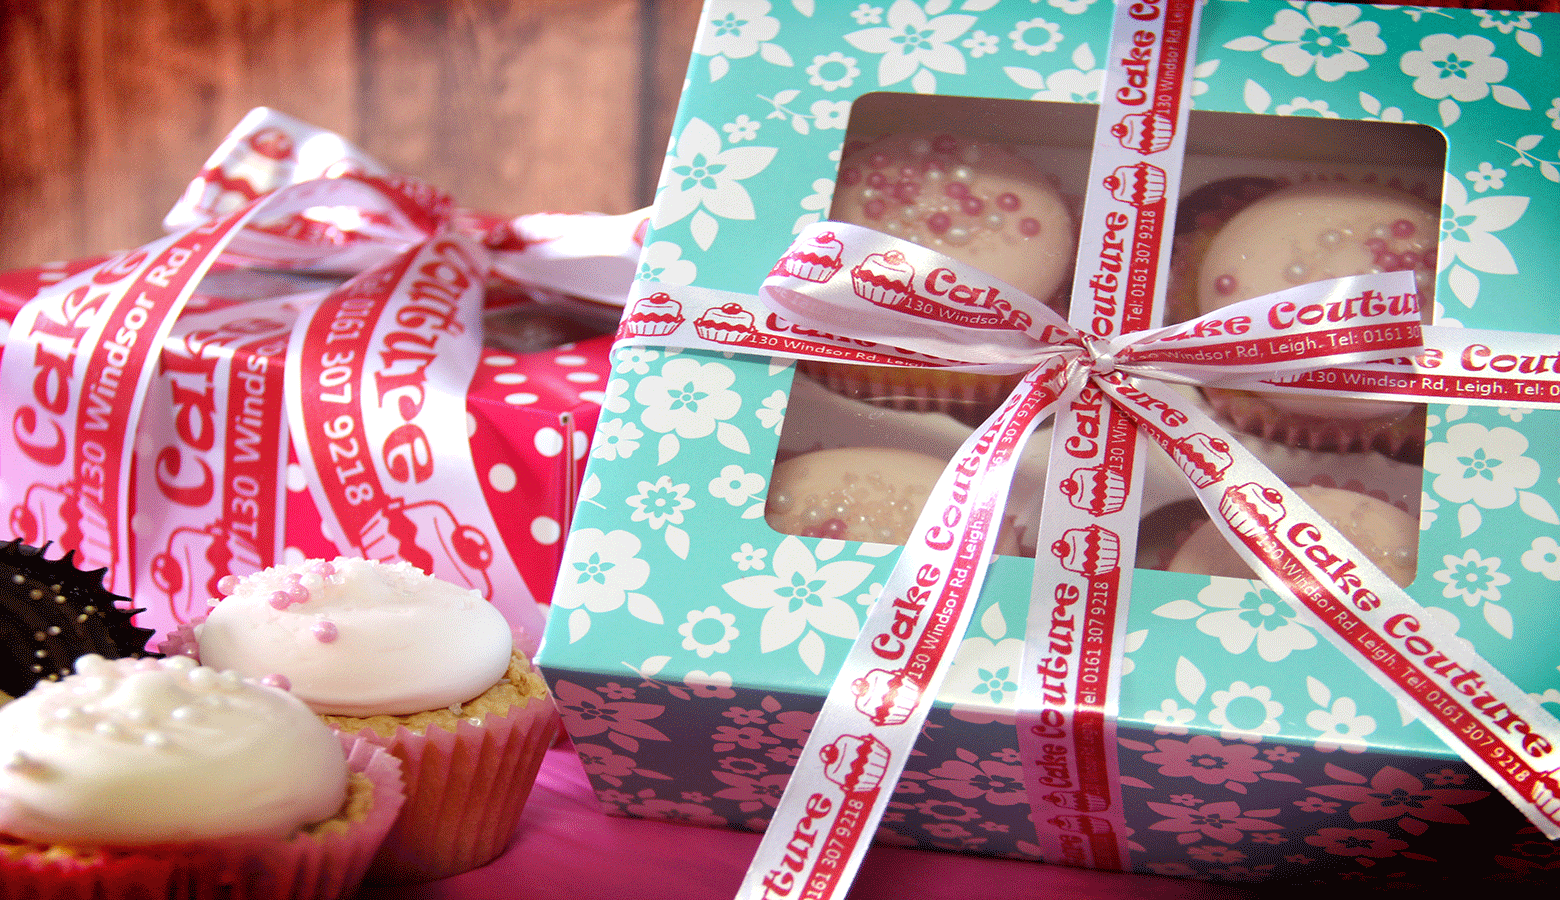 cupcakes in a blue box tied with a ribbon